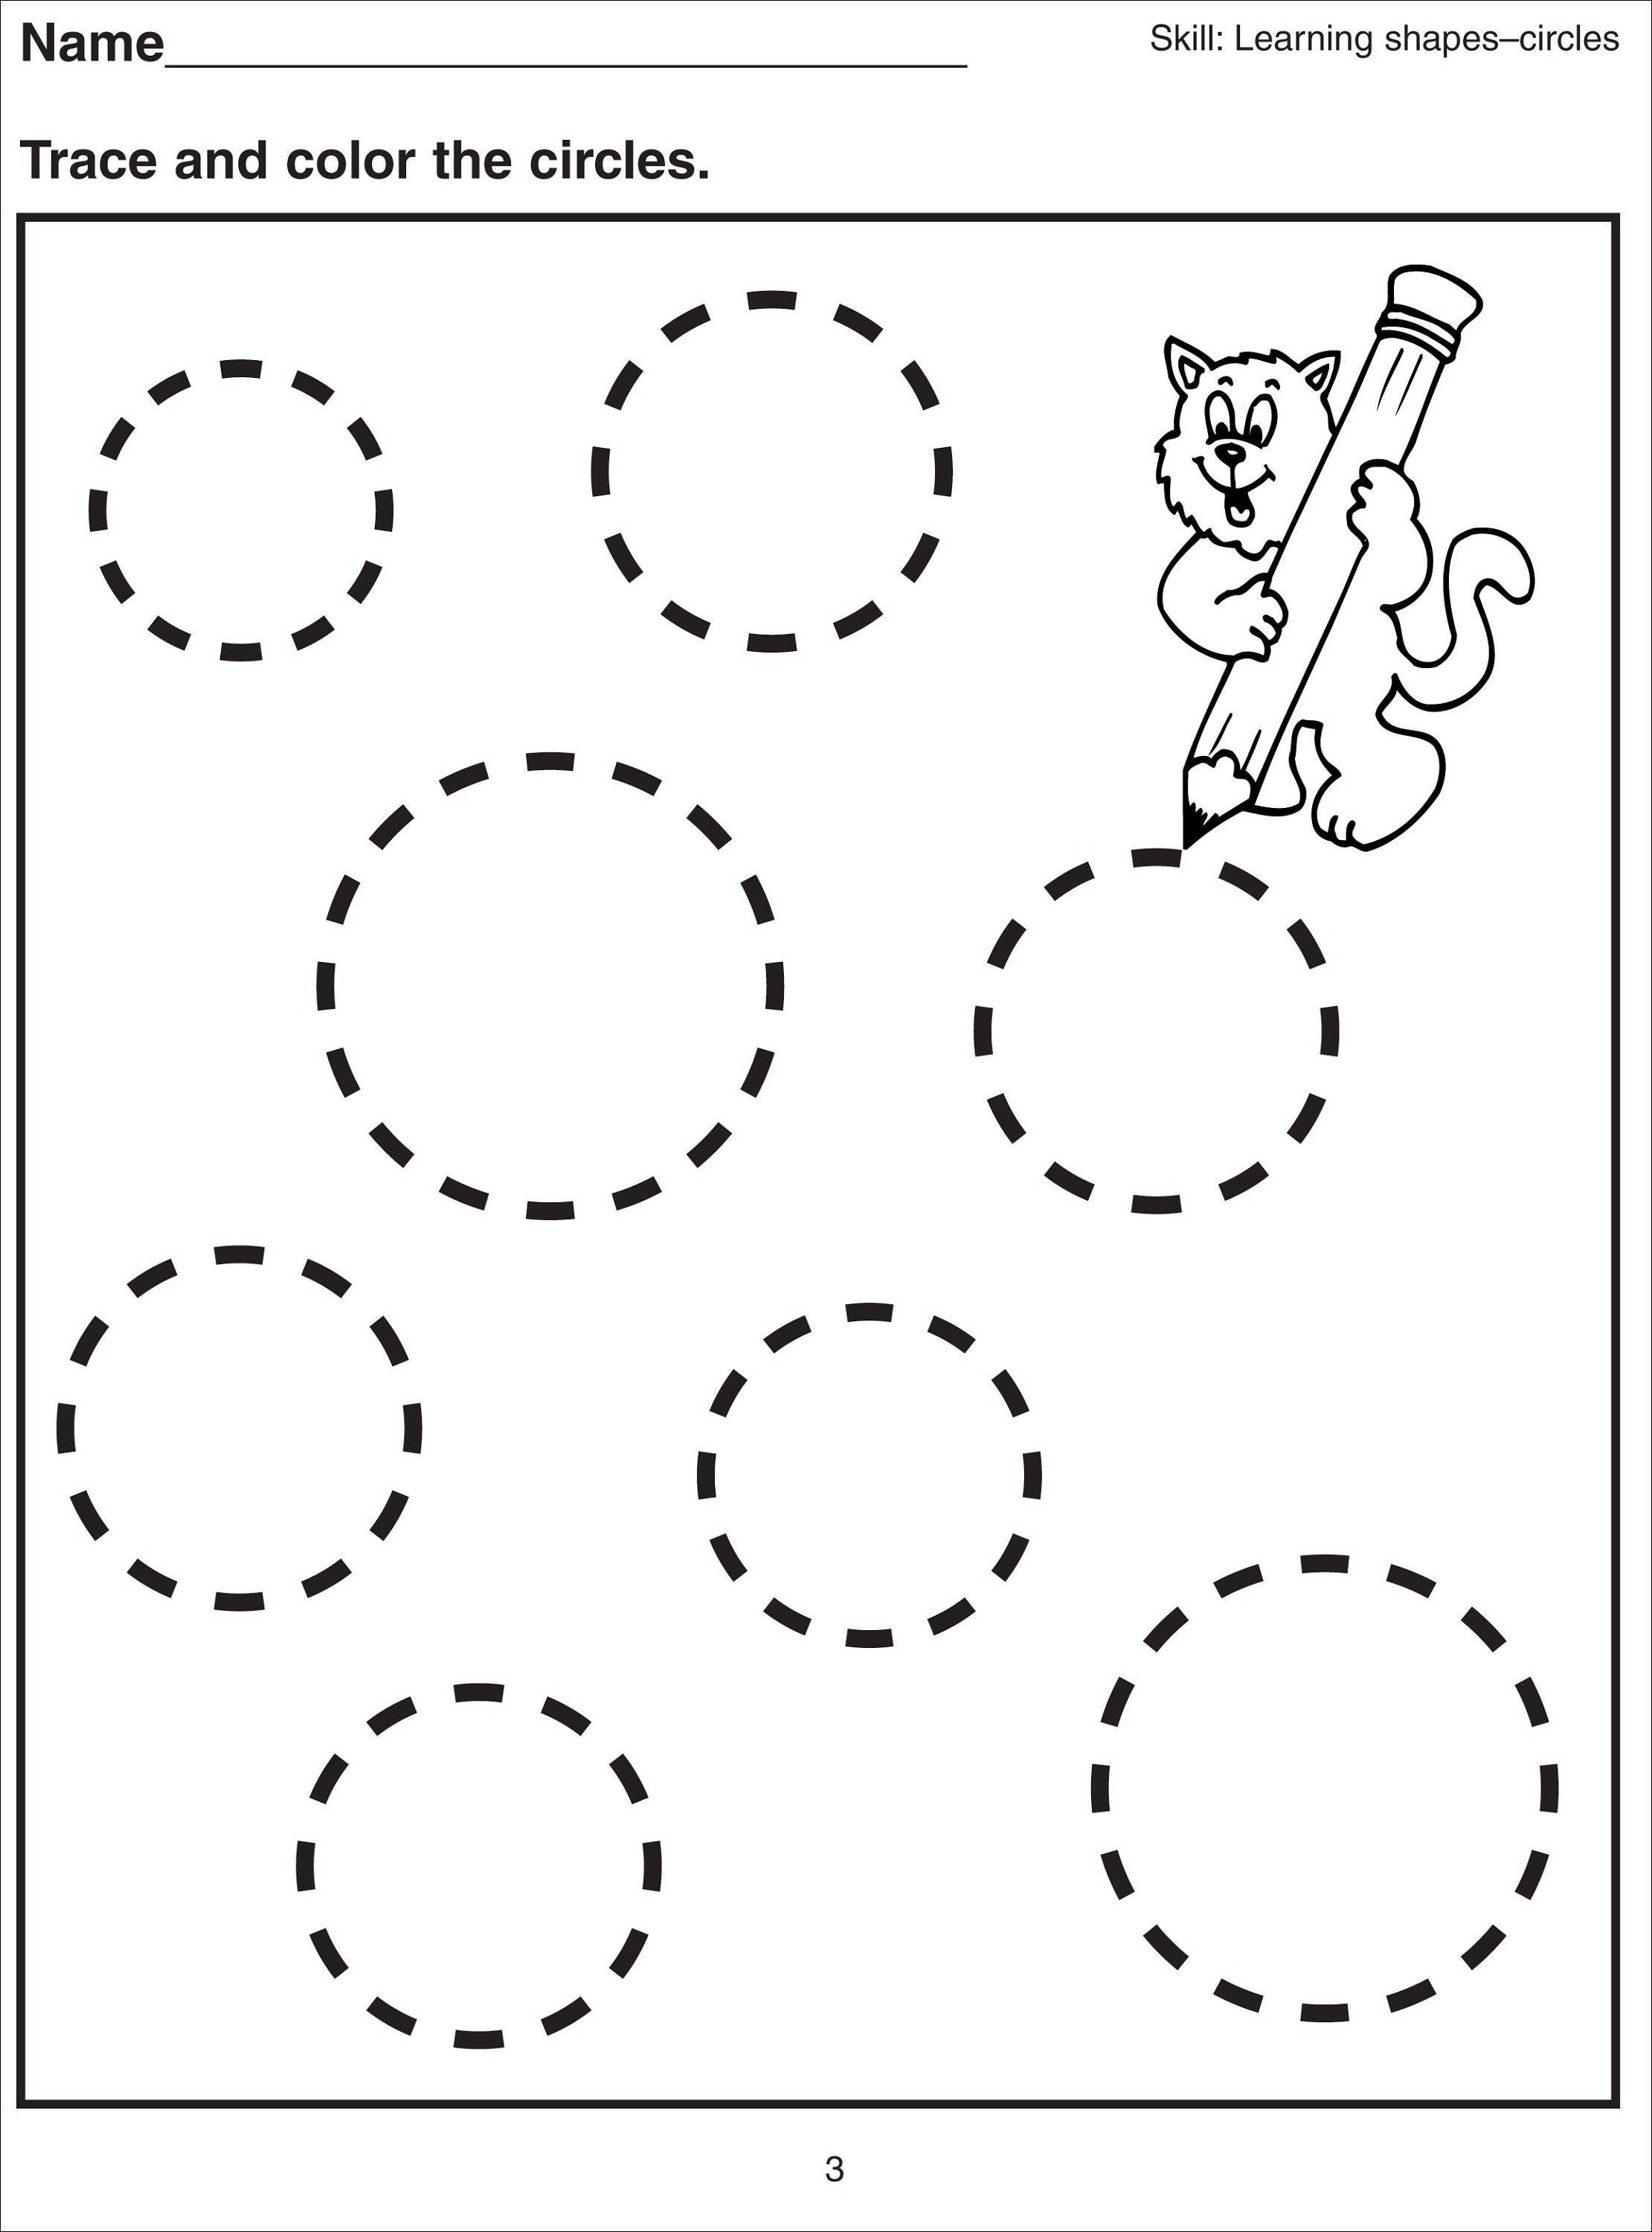 basic-shapes-worksheets-circle